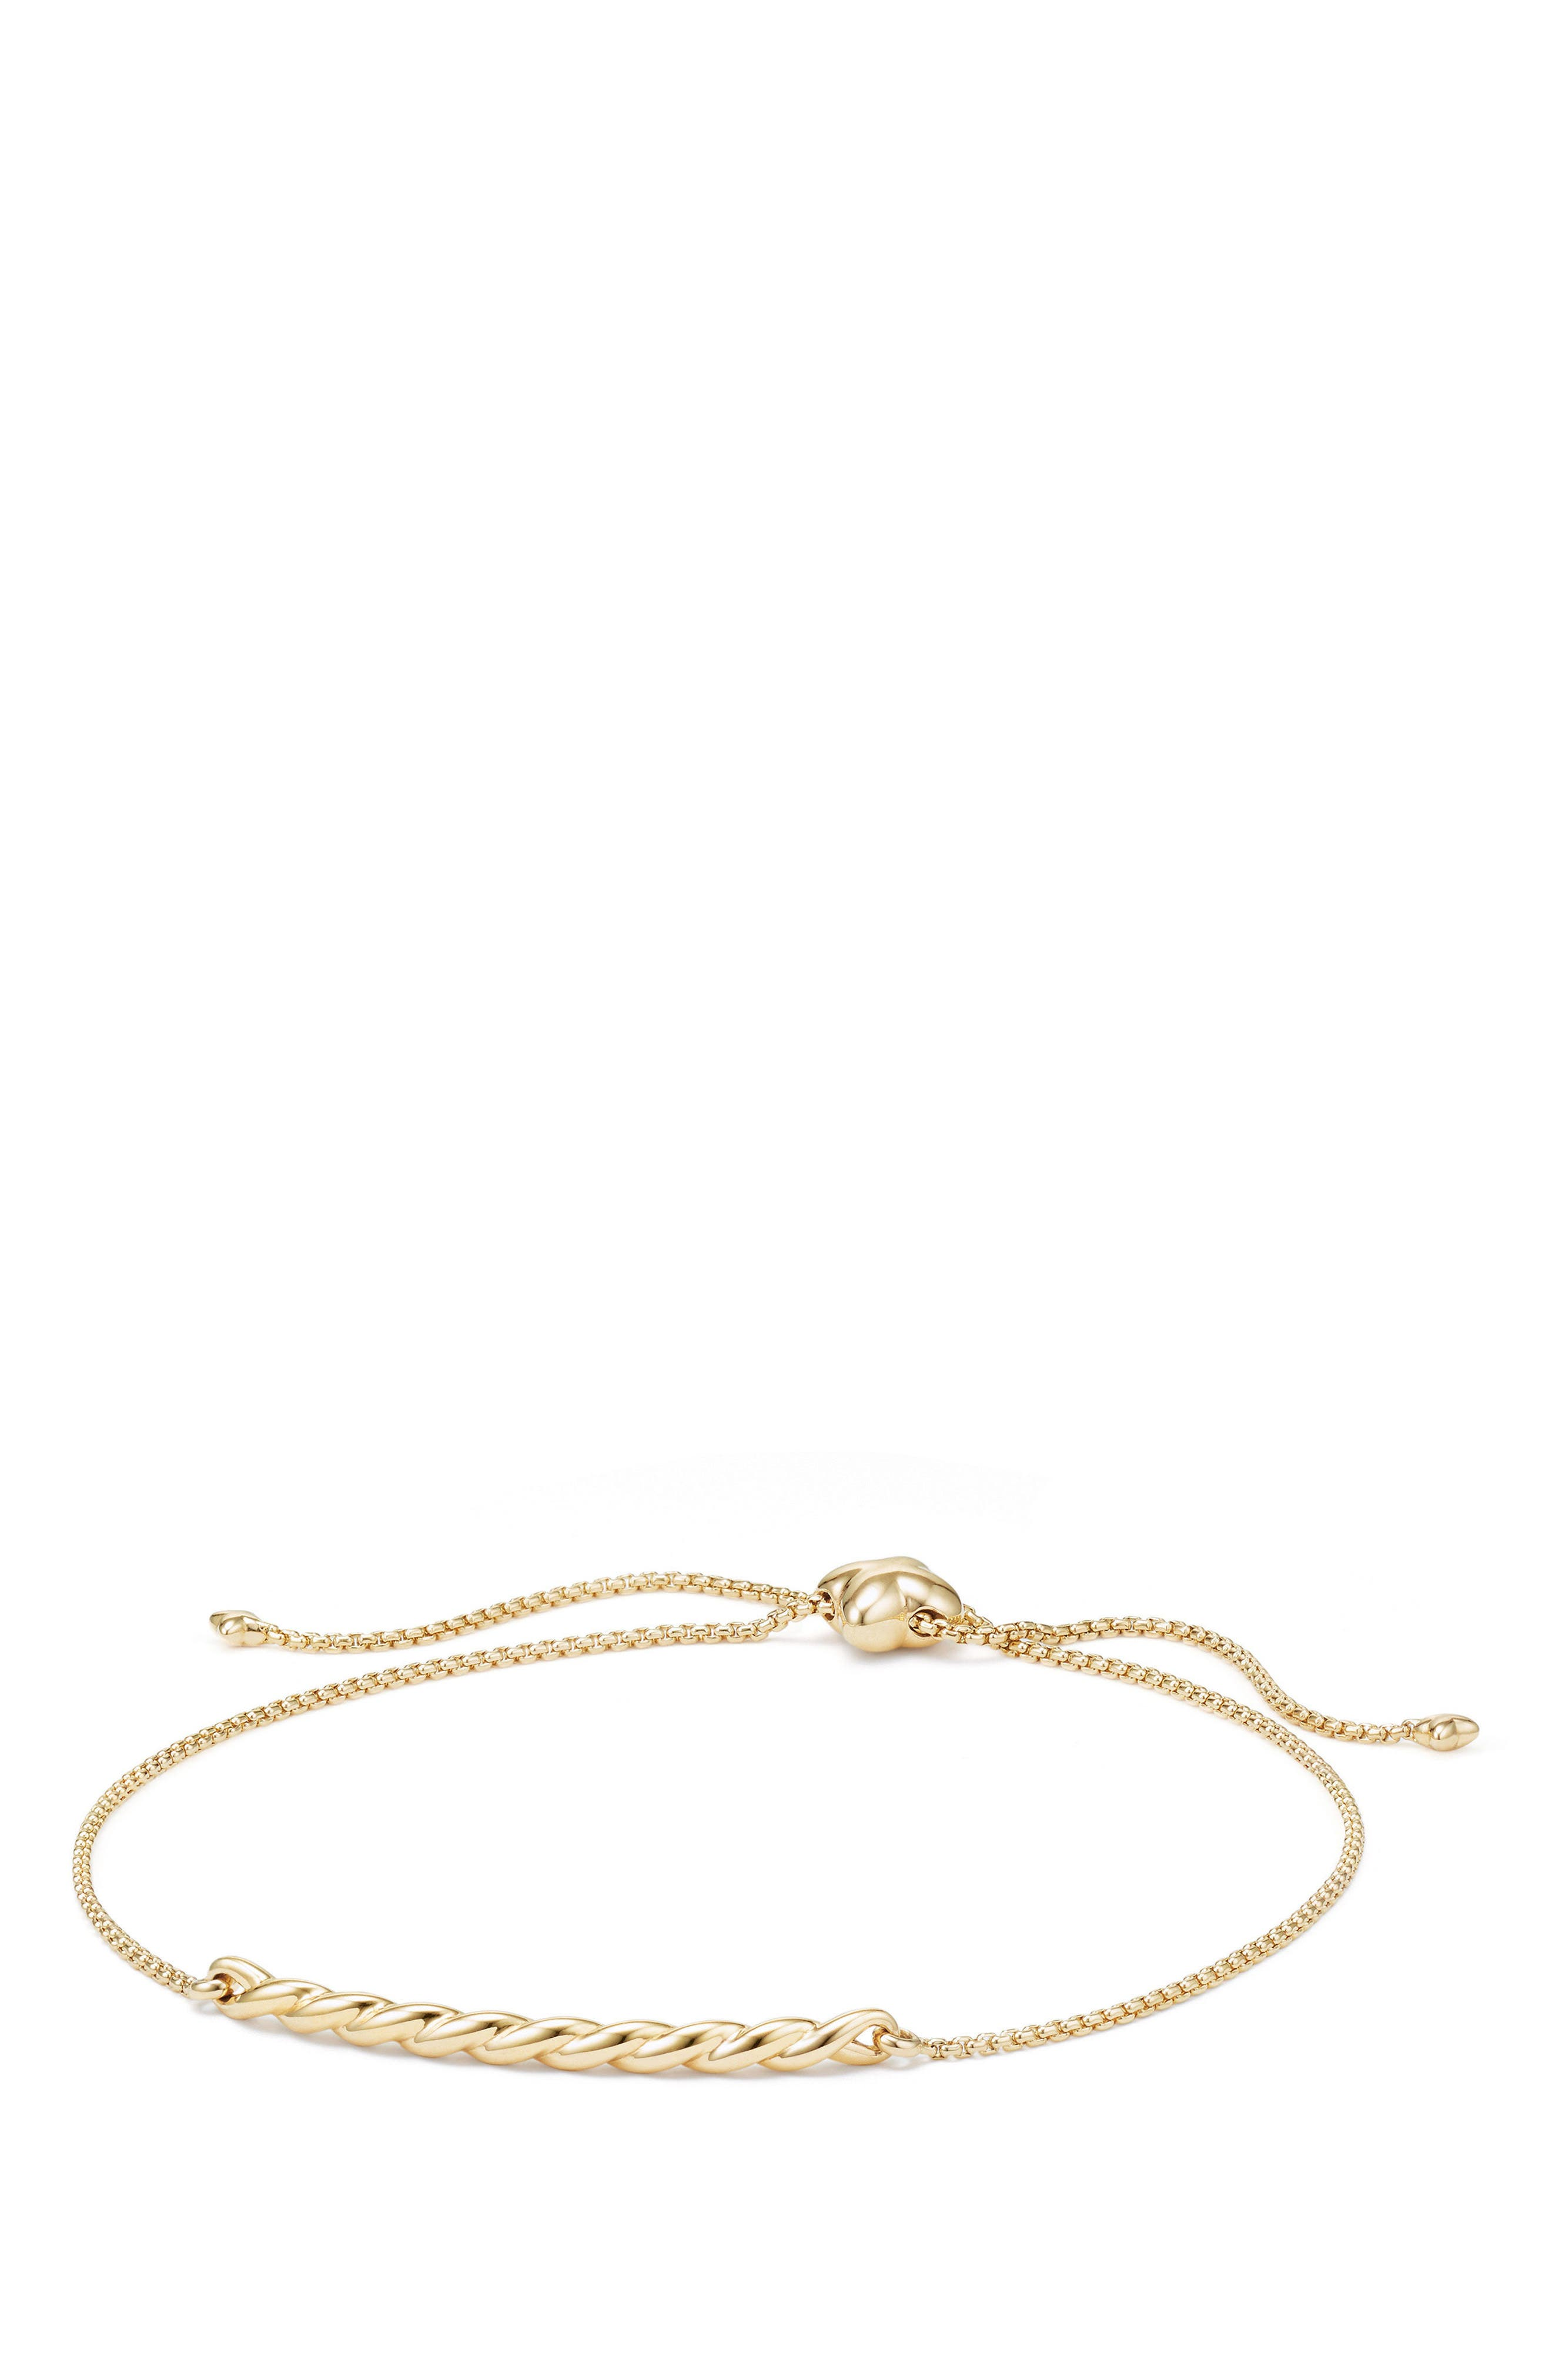 Paveflex Station Bracelet in 18K Gold,                             Main thumbnail 1, color,                             YELLOW GOLD